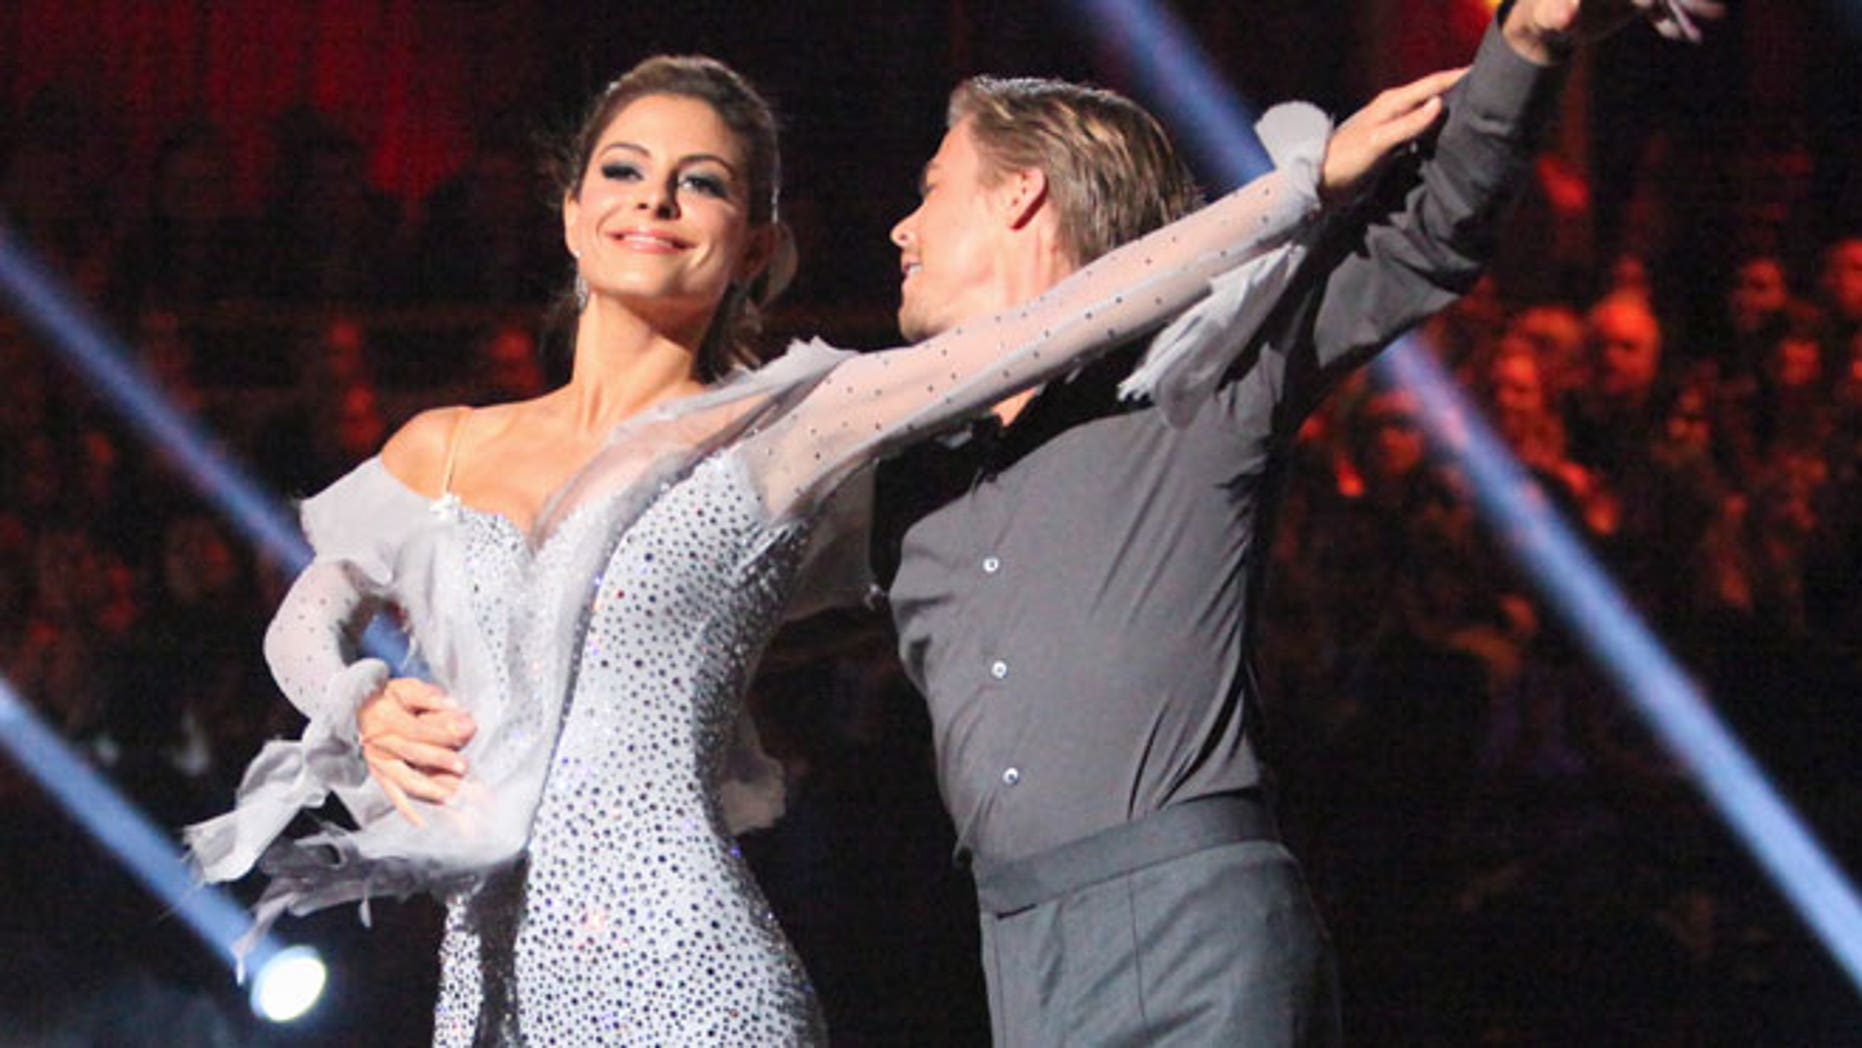 """In this Monday, May 7, 2012 photo, TV personality Maria Menounos, left, and her partner Derek Hough perform on the celebrity dance competition series, """"Dancing with the Stars,"""" in Los Angeles."""